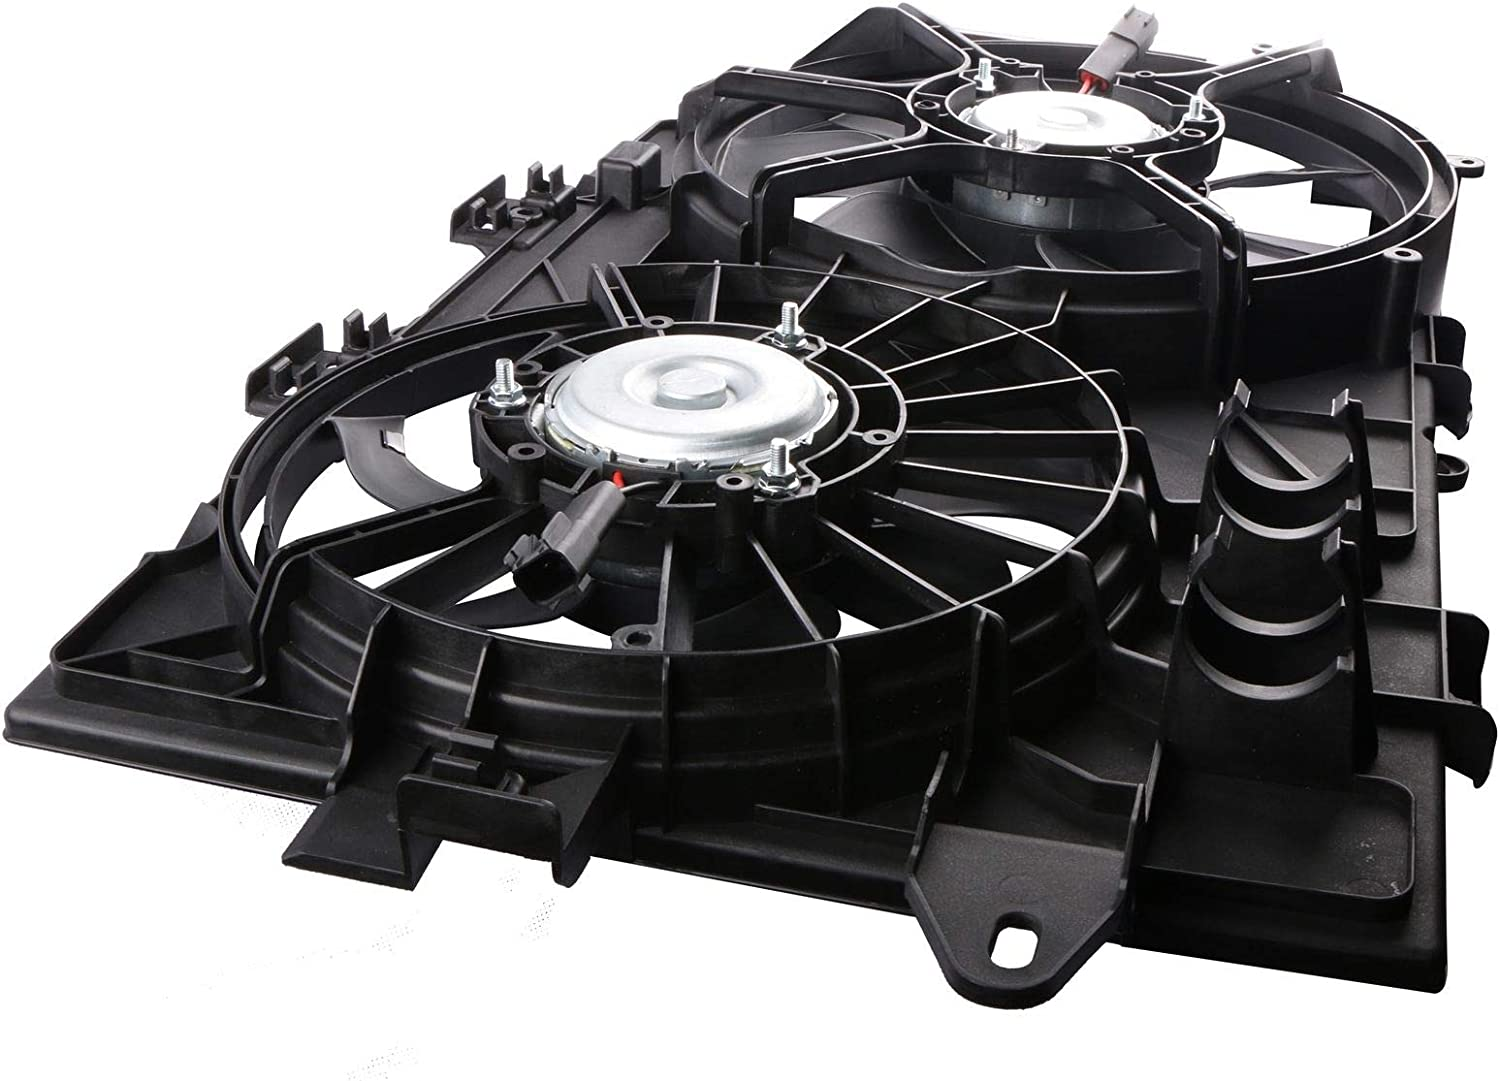 DUAL COOLING FAN ASSEMBLY GM3115204 Fit 2006-2008 CHEVY EQUINOX TORRENT 3.4L V6